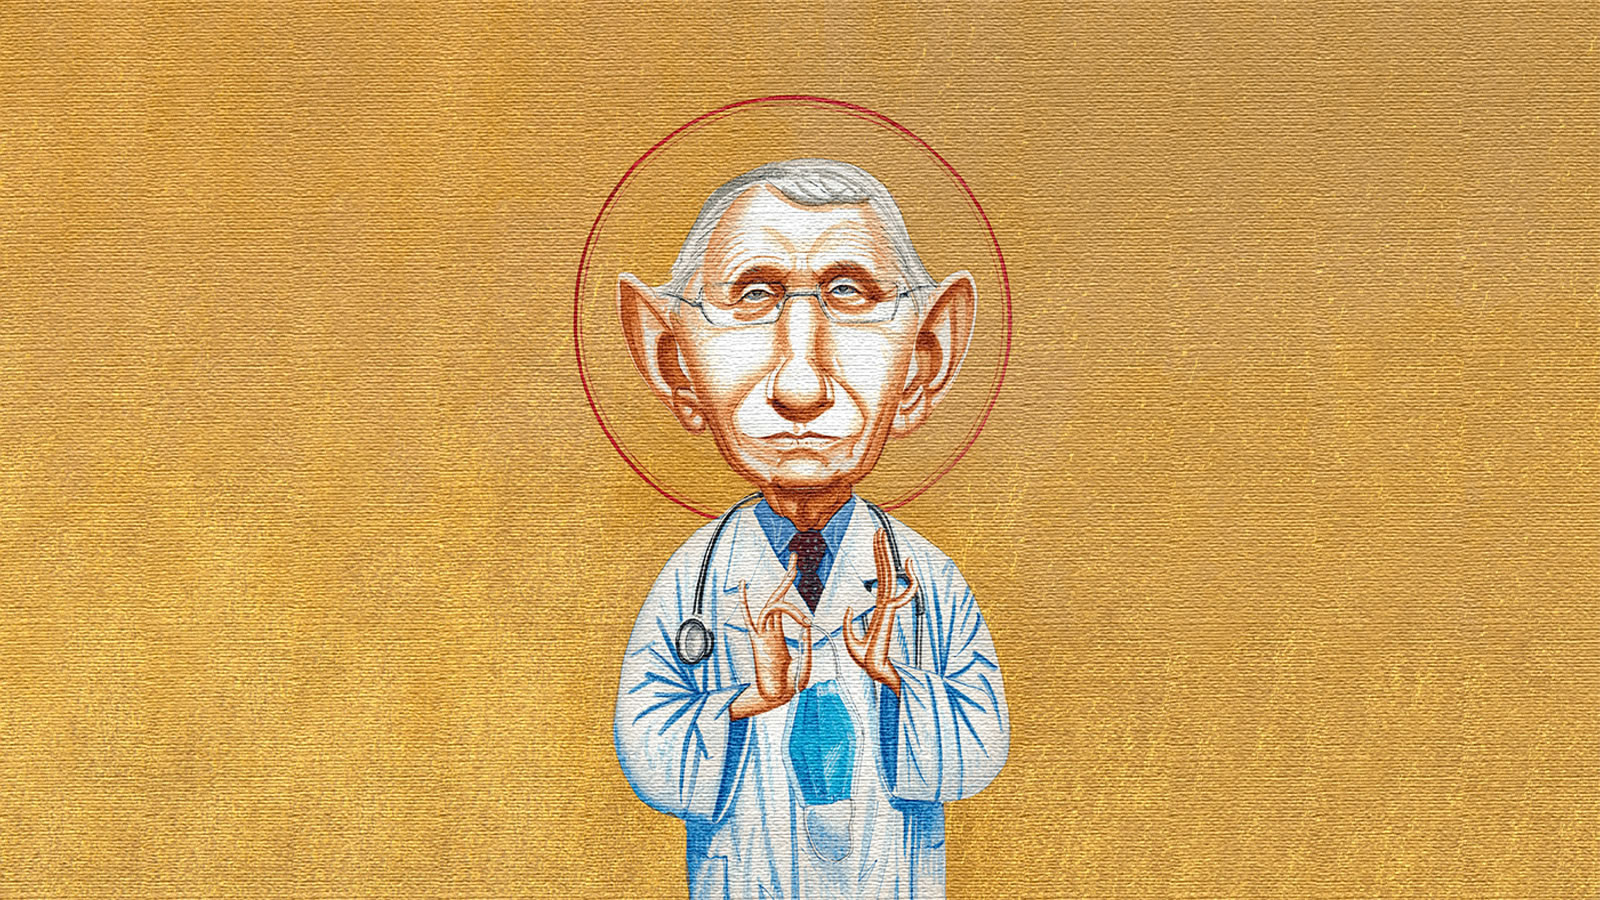 shades-of-scientism:-fauci-likens-science-to-god,-himself-as-priest